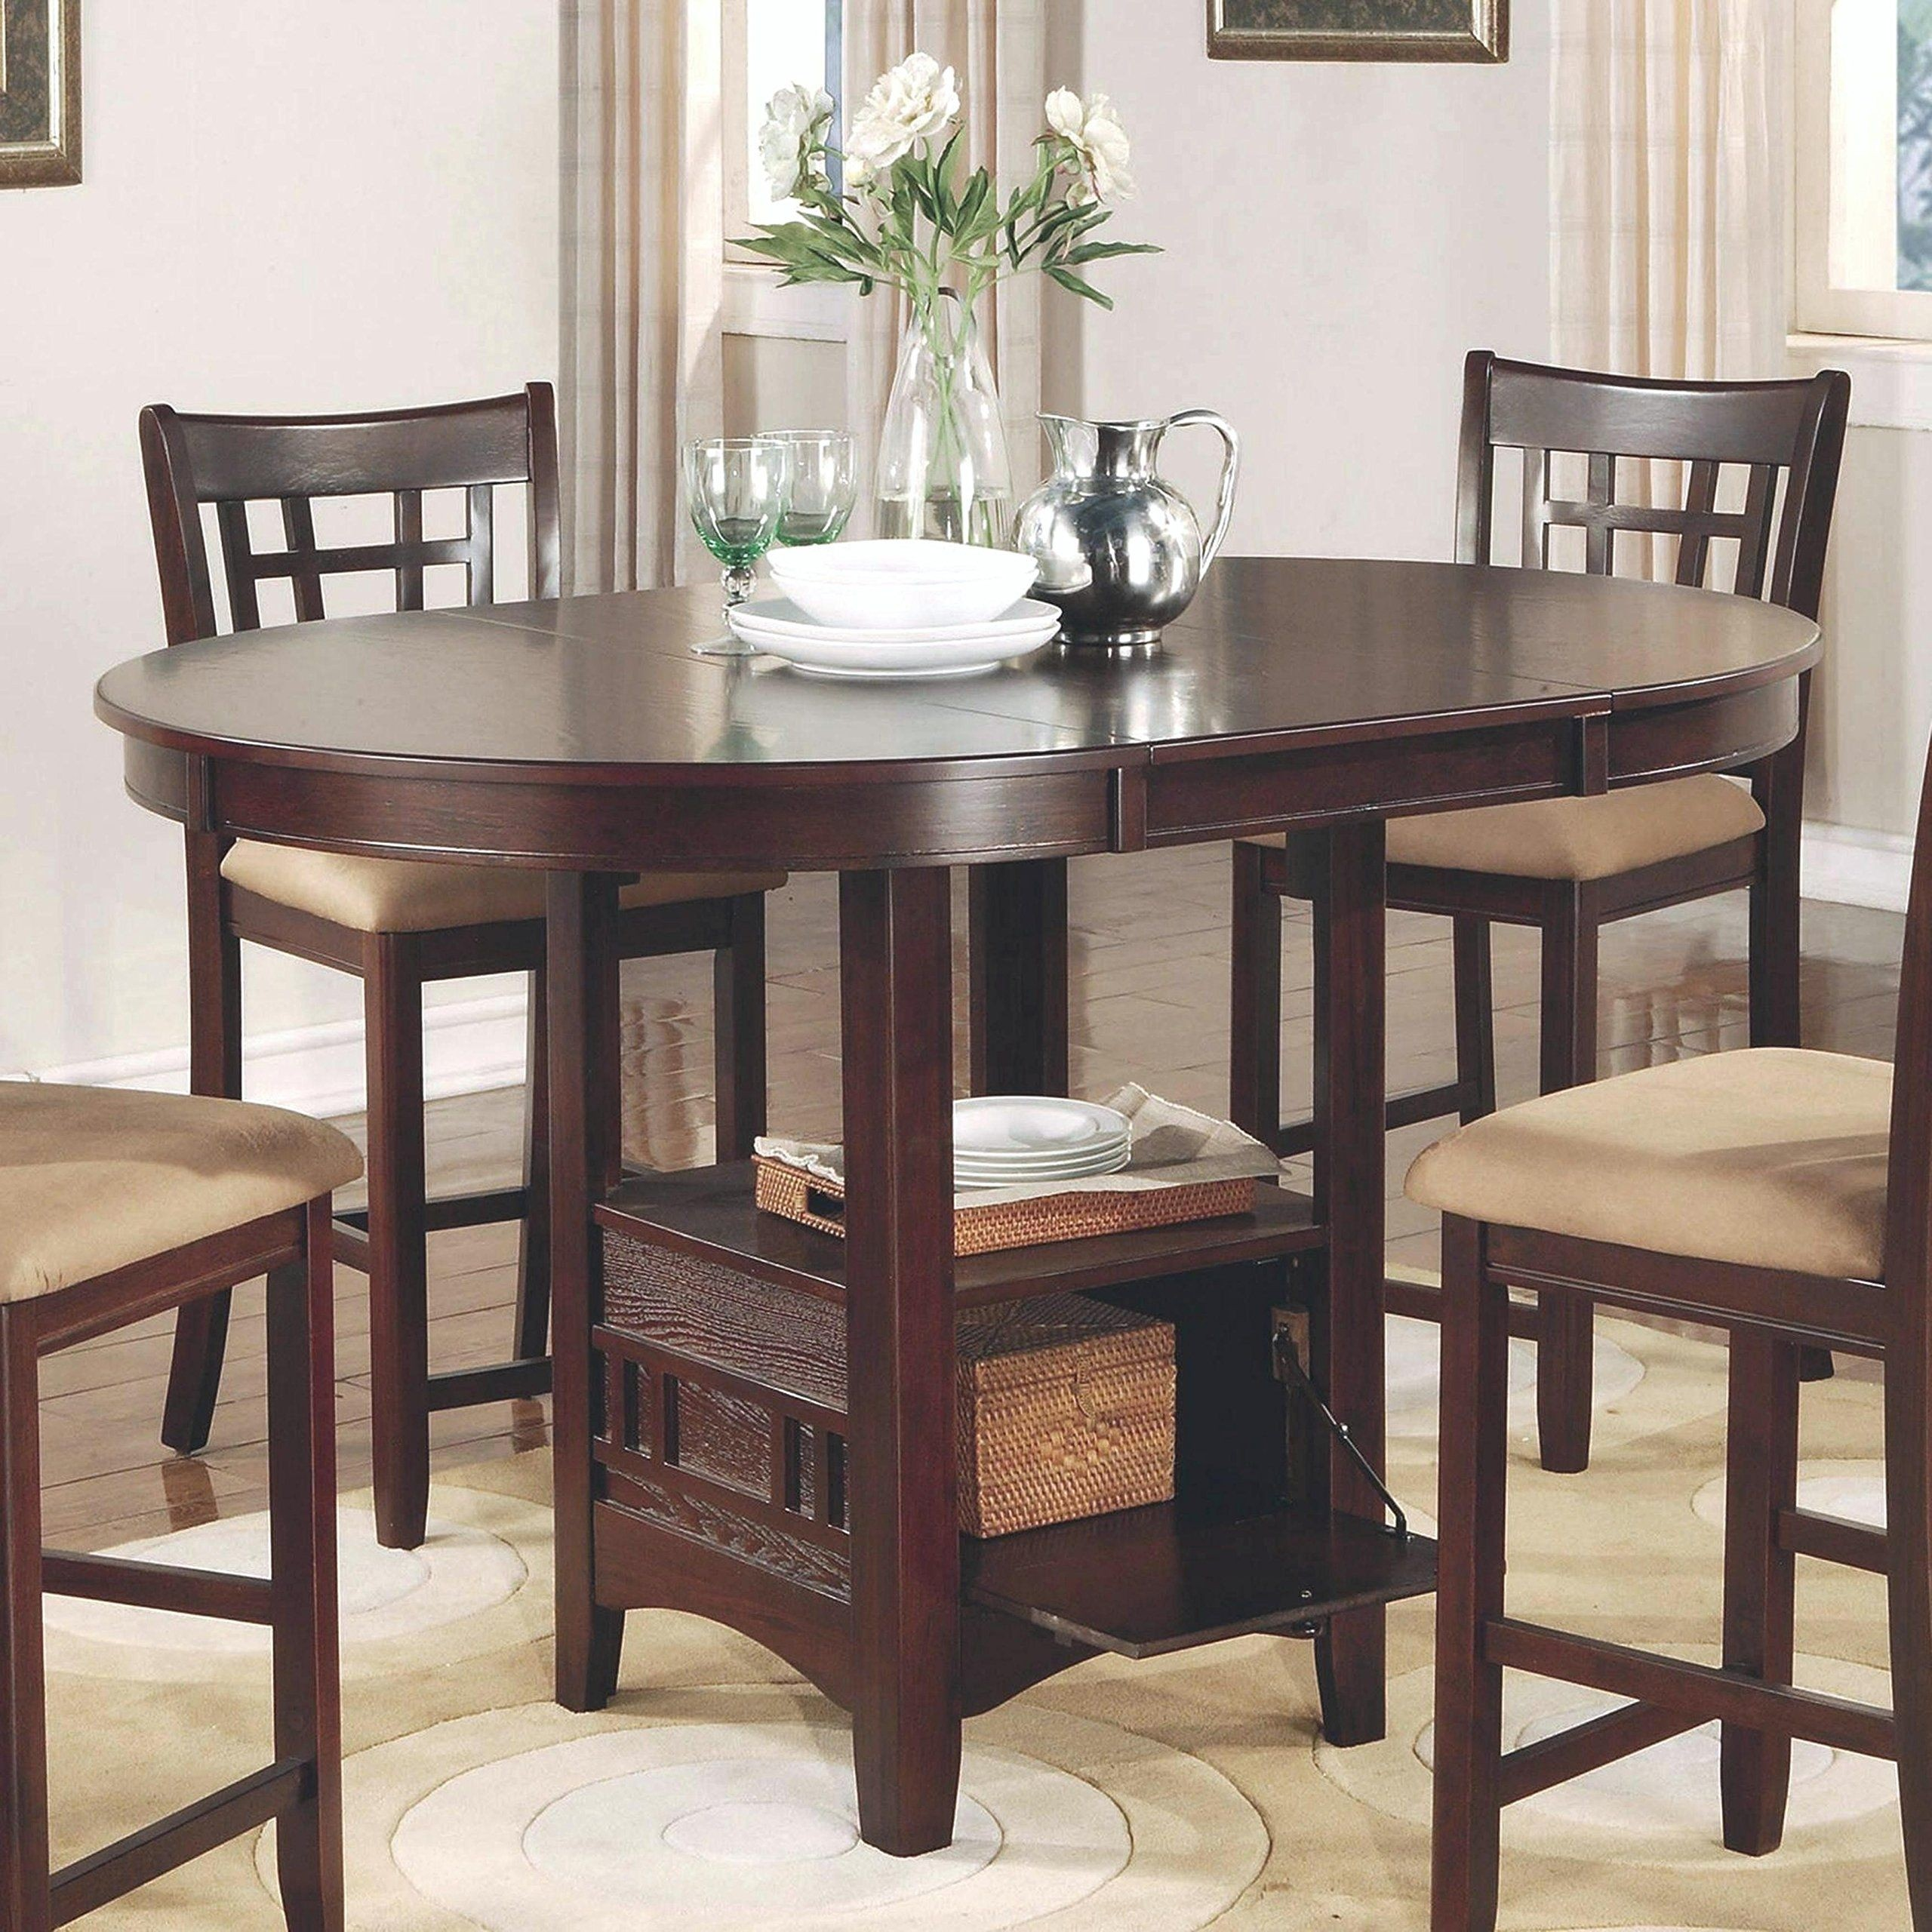 Counter Height Round Dining Table Ideas On Foter